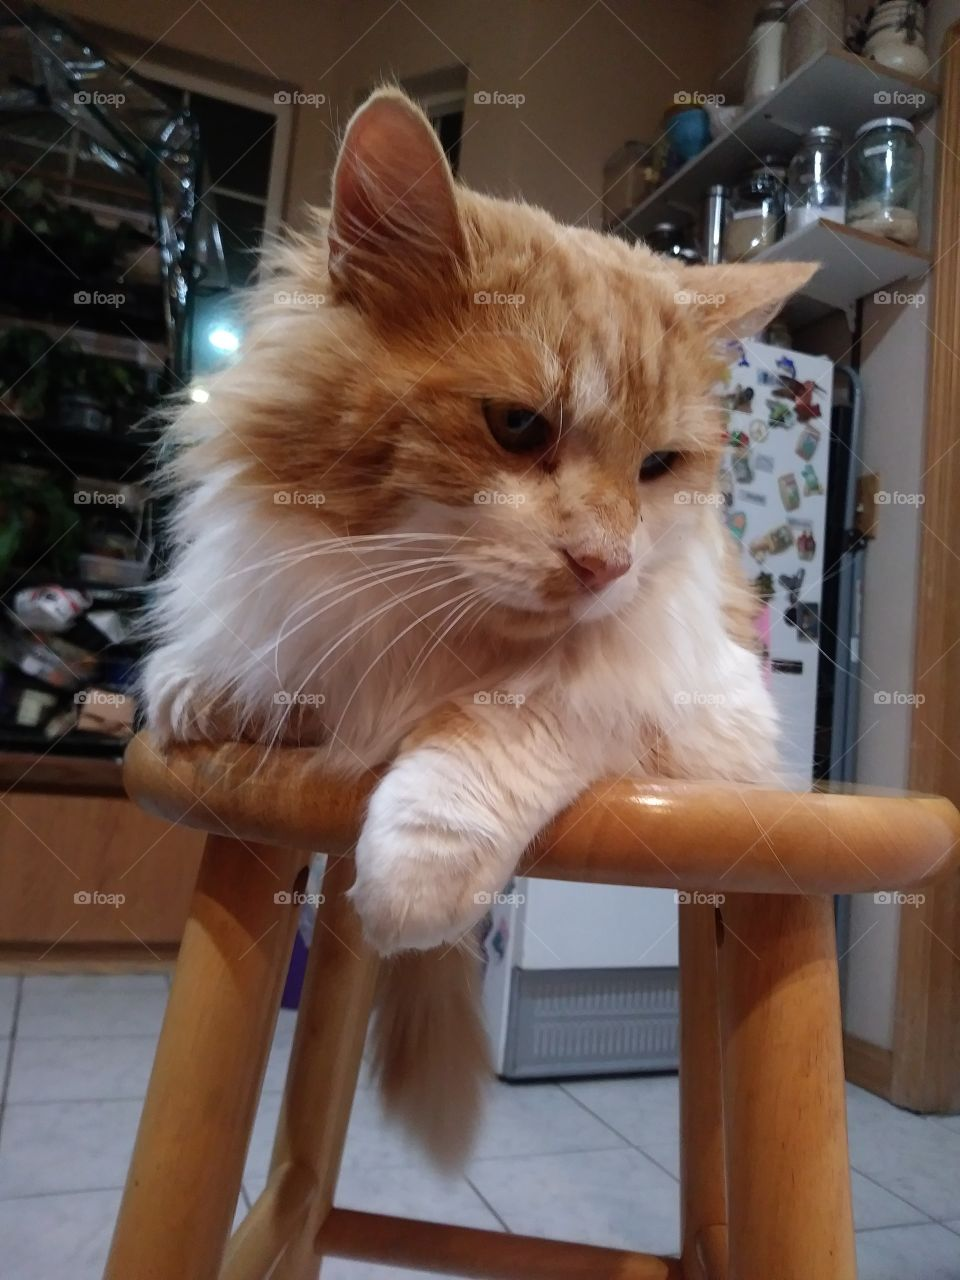 Orange and white cat resting on a stool